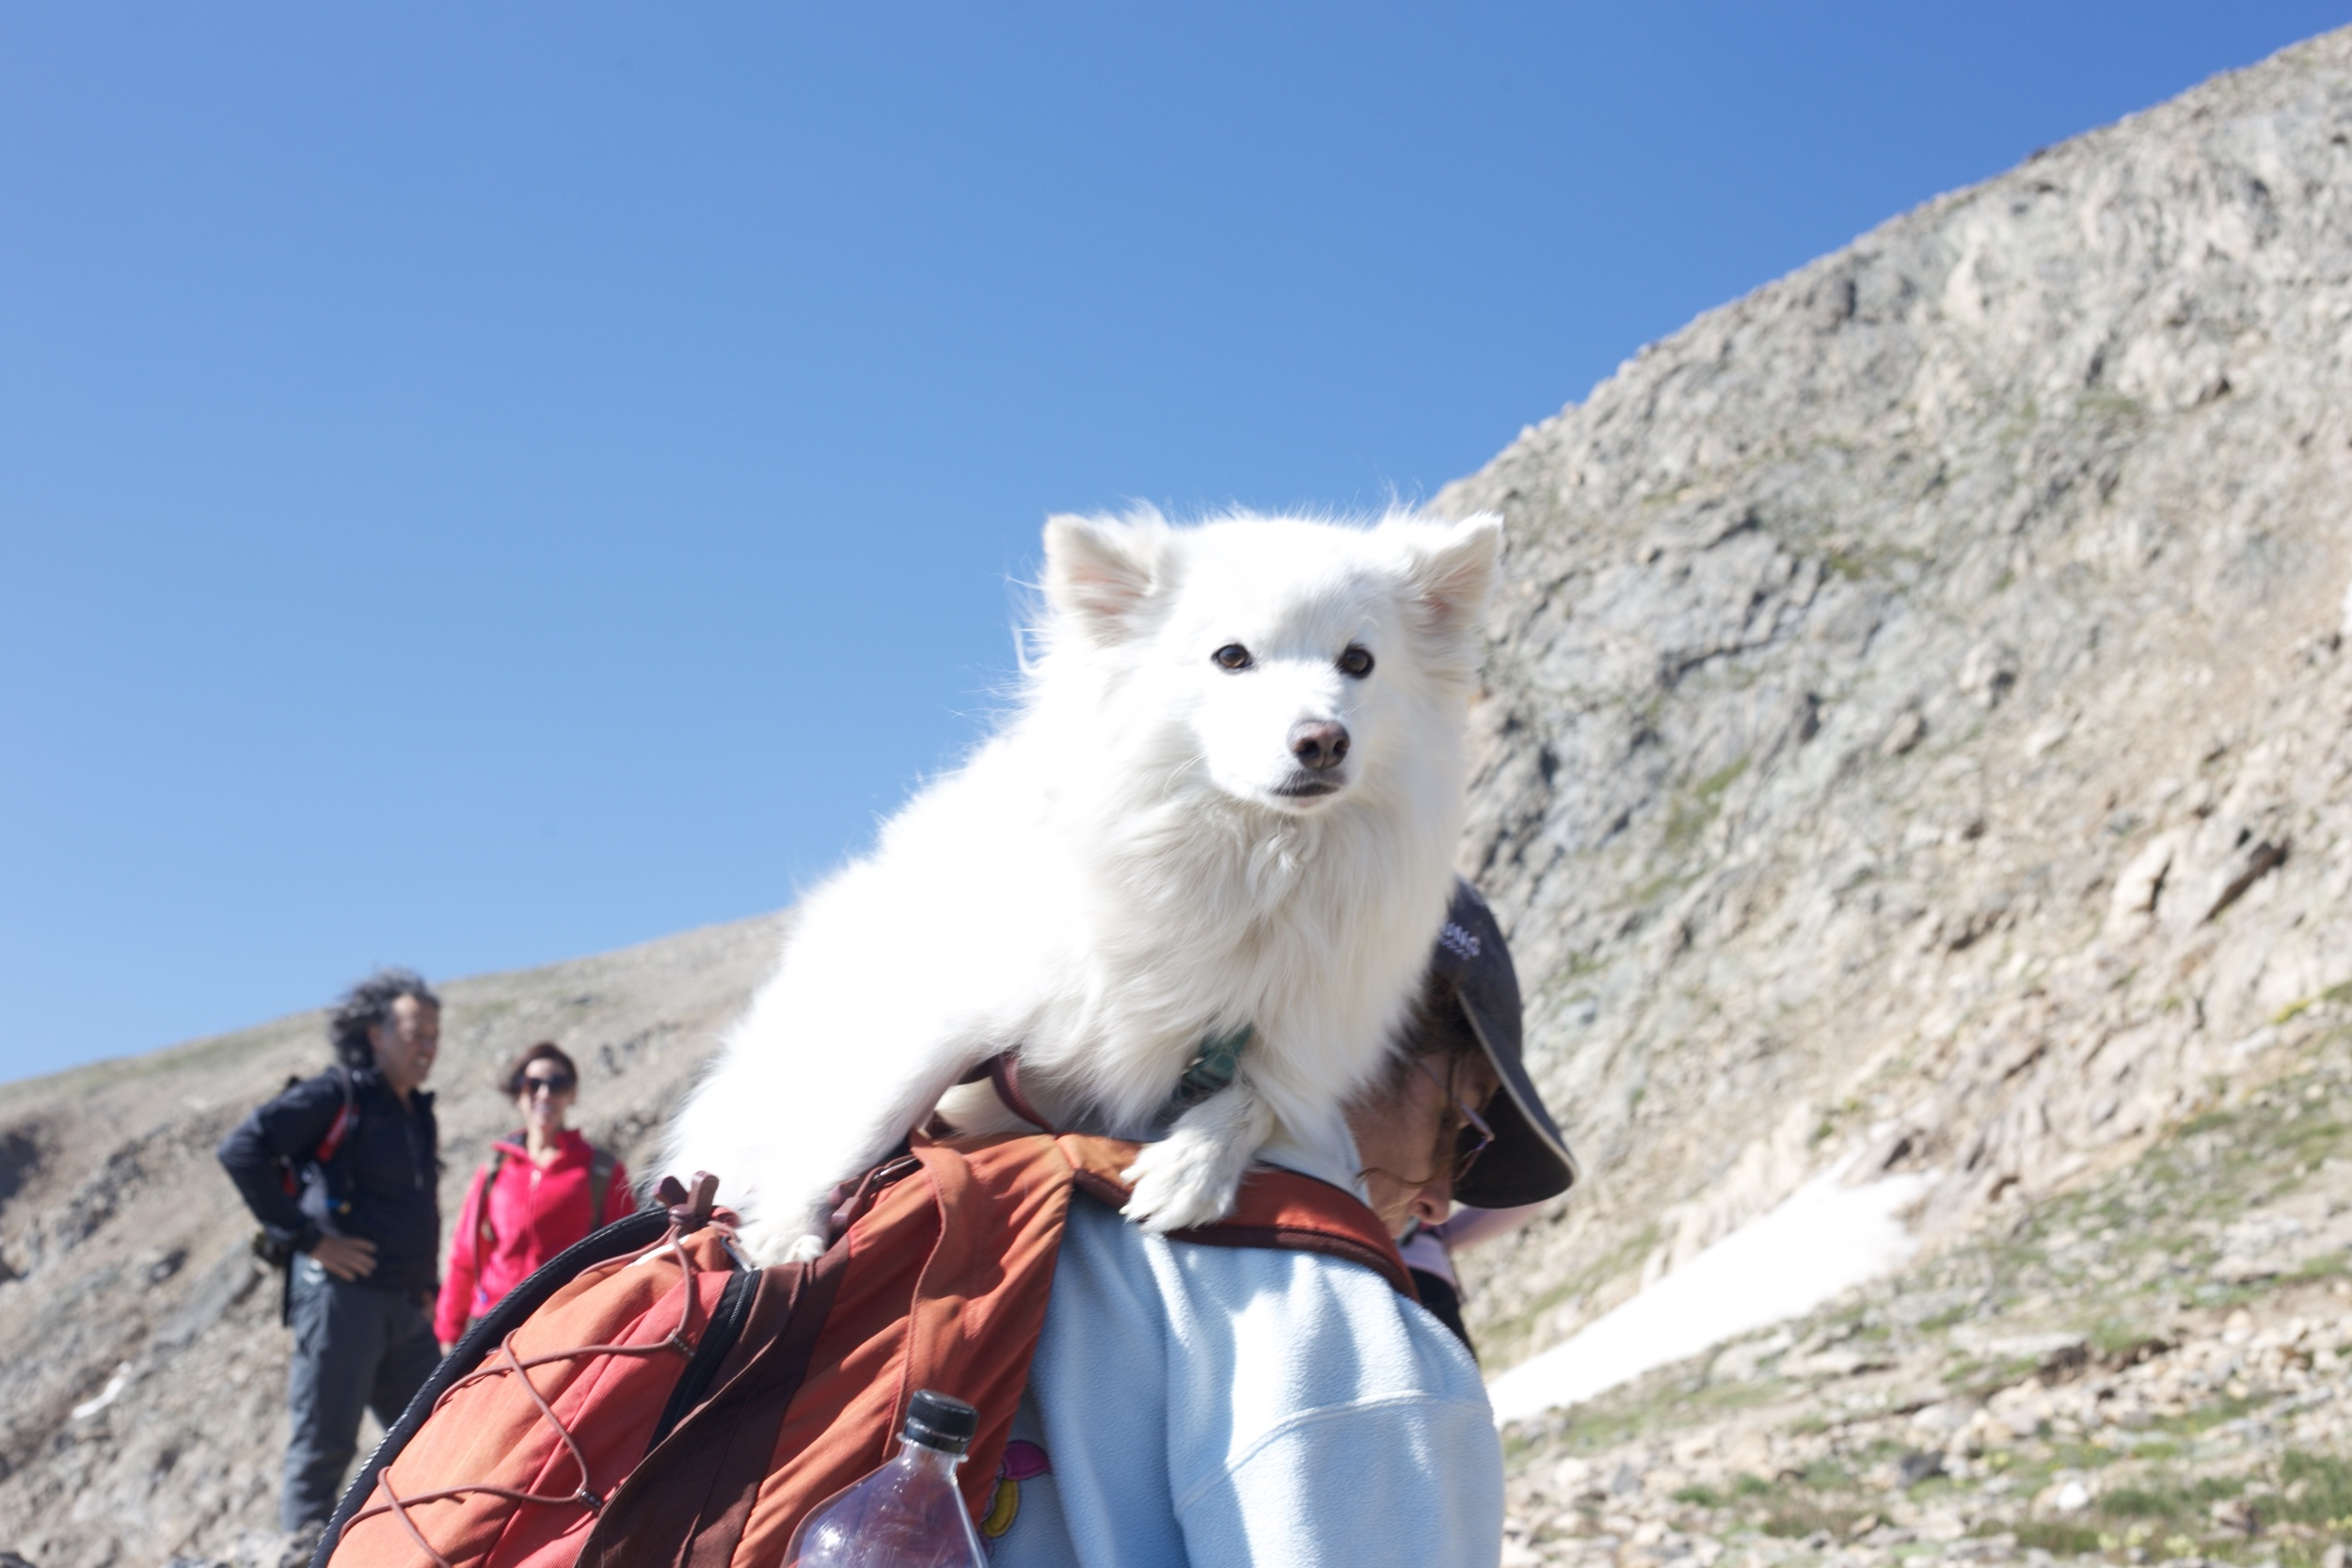 Dog riding on a ladie's backpack.